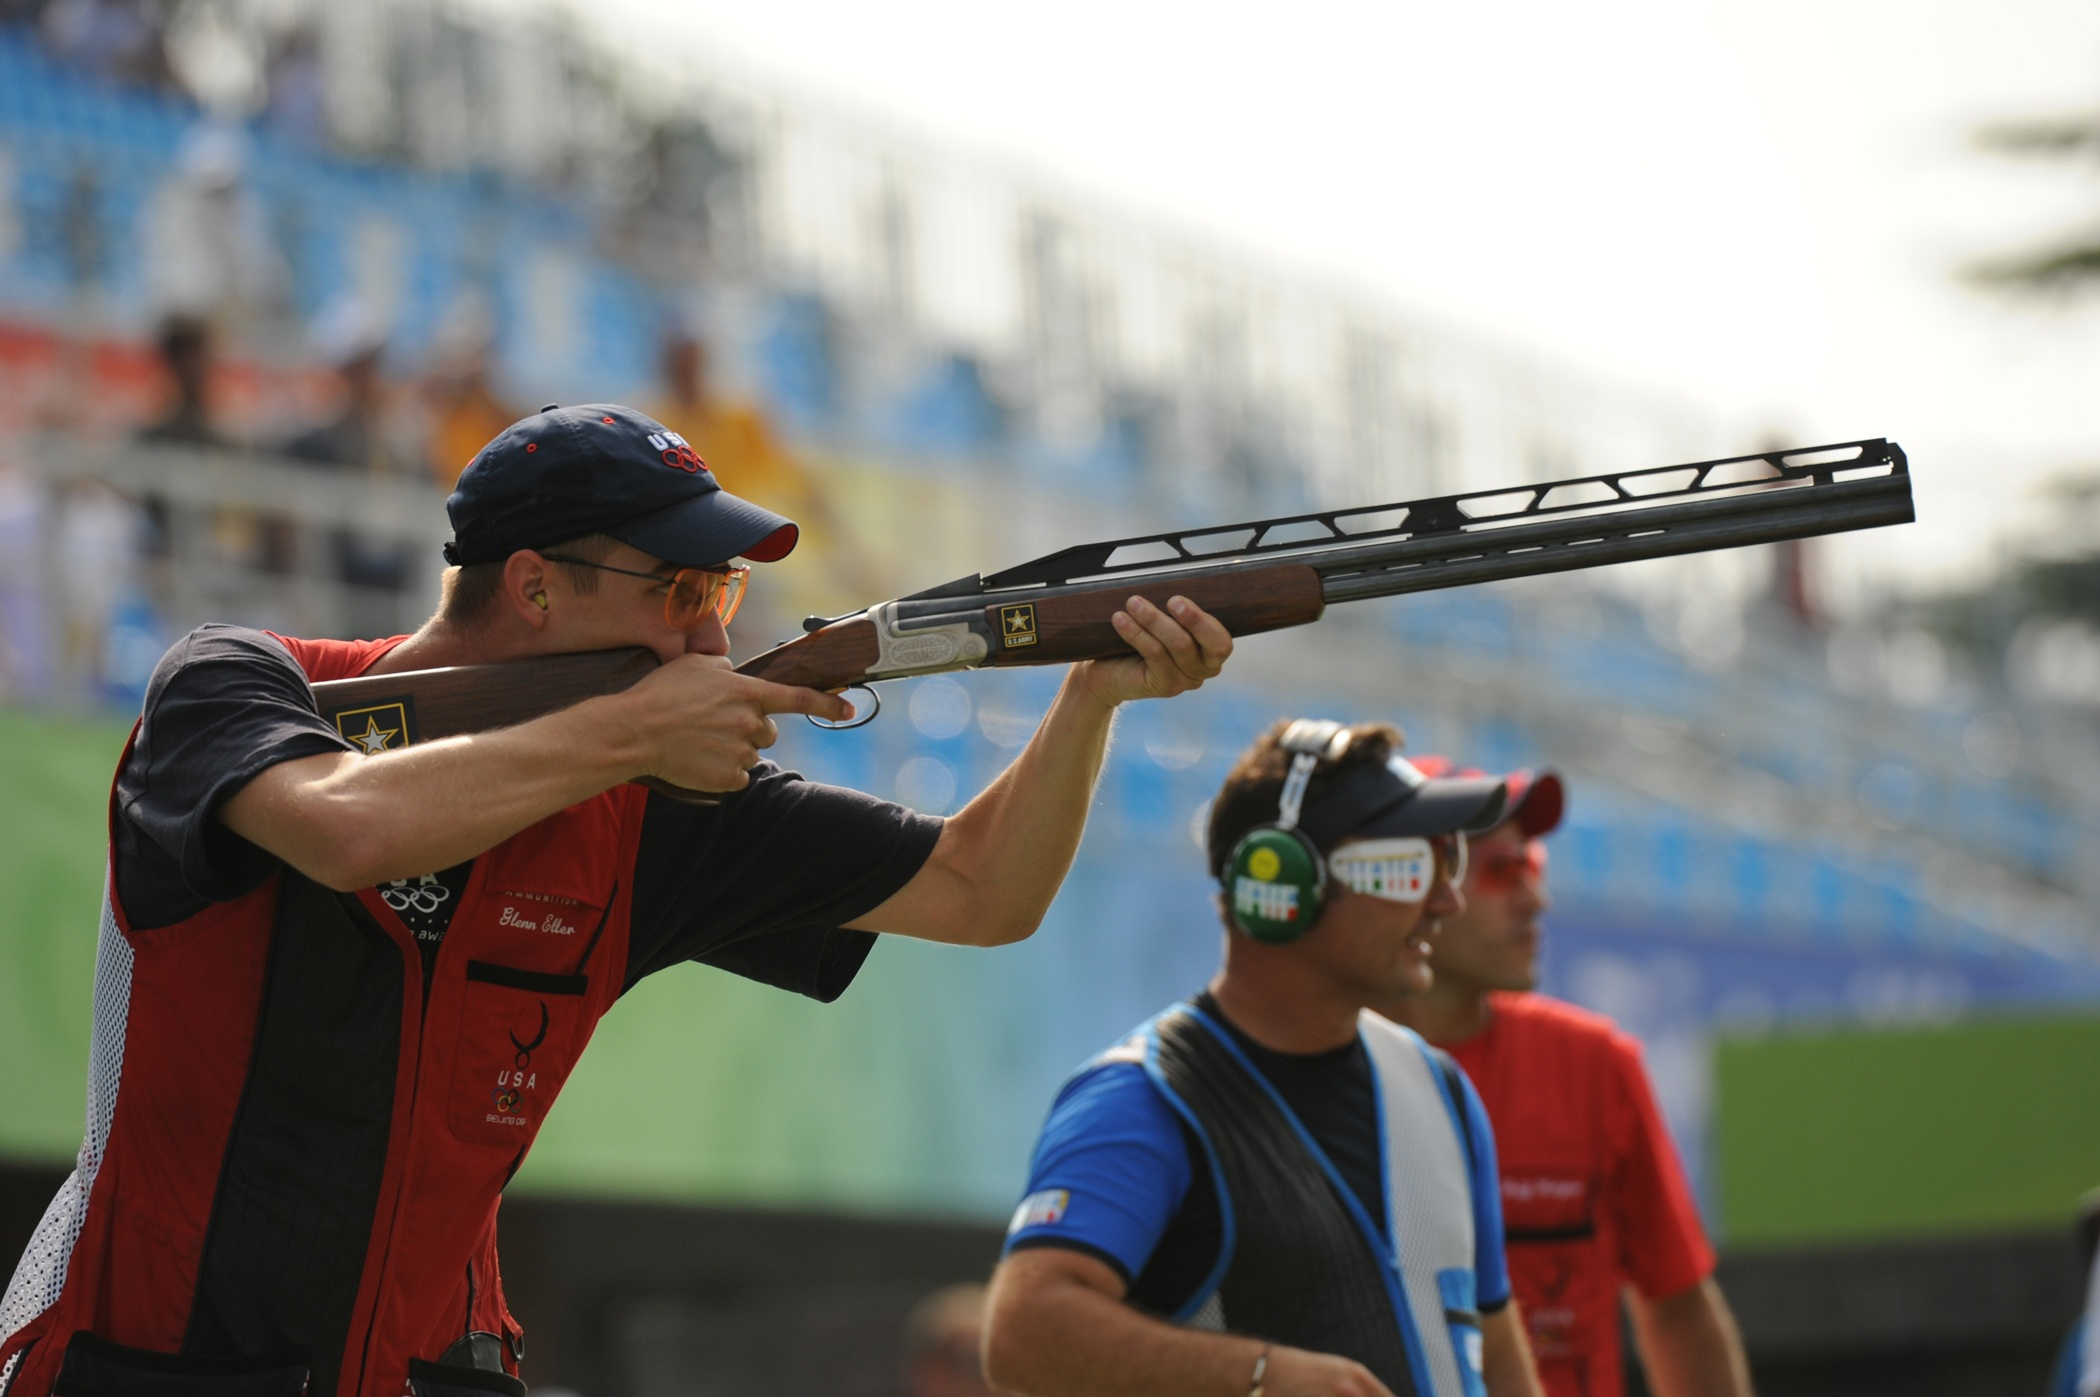 olympic participants for clay shooting